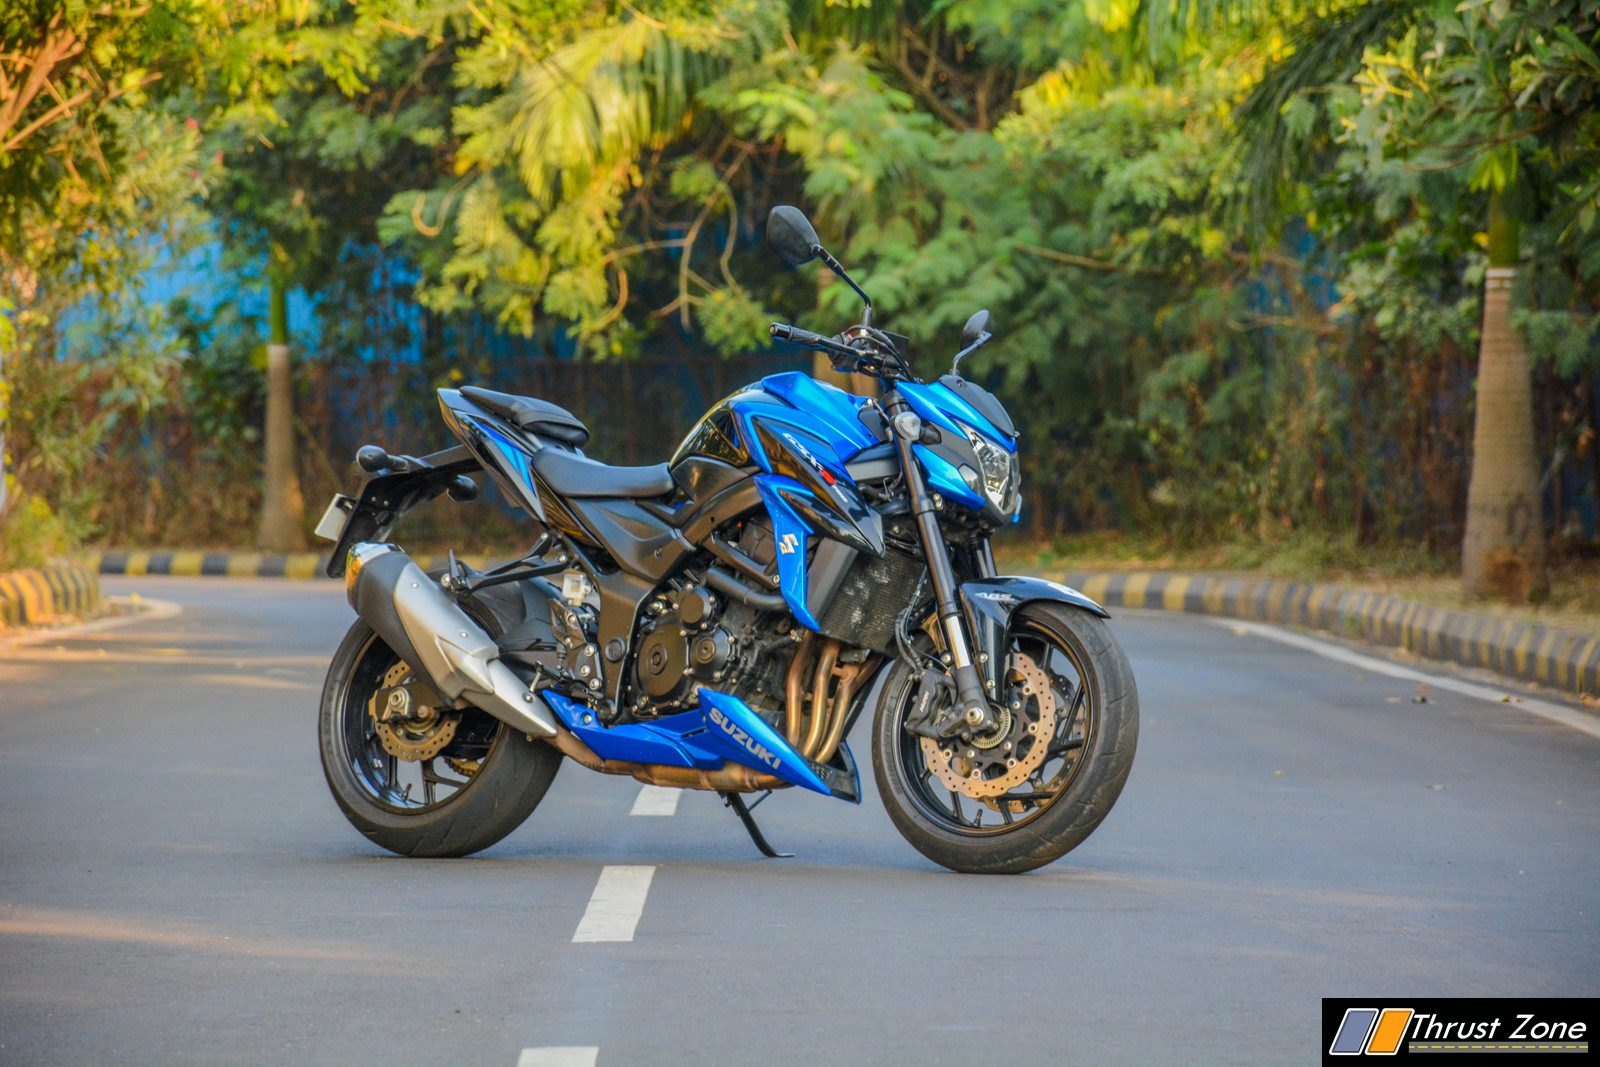 https://www.thrustzone.com/wp-content/uploads/2018/12/2018-Suzuki-GSX-750-INDIA-Review-22.jpg